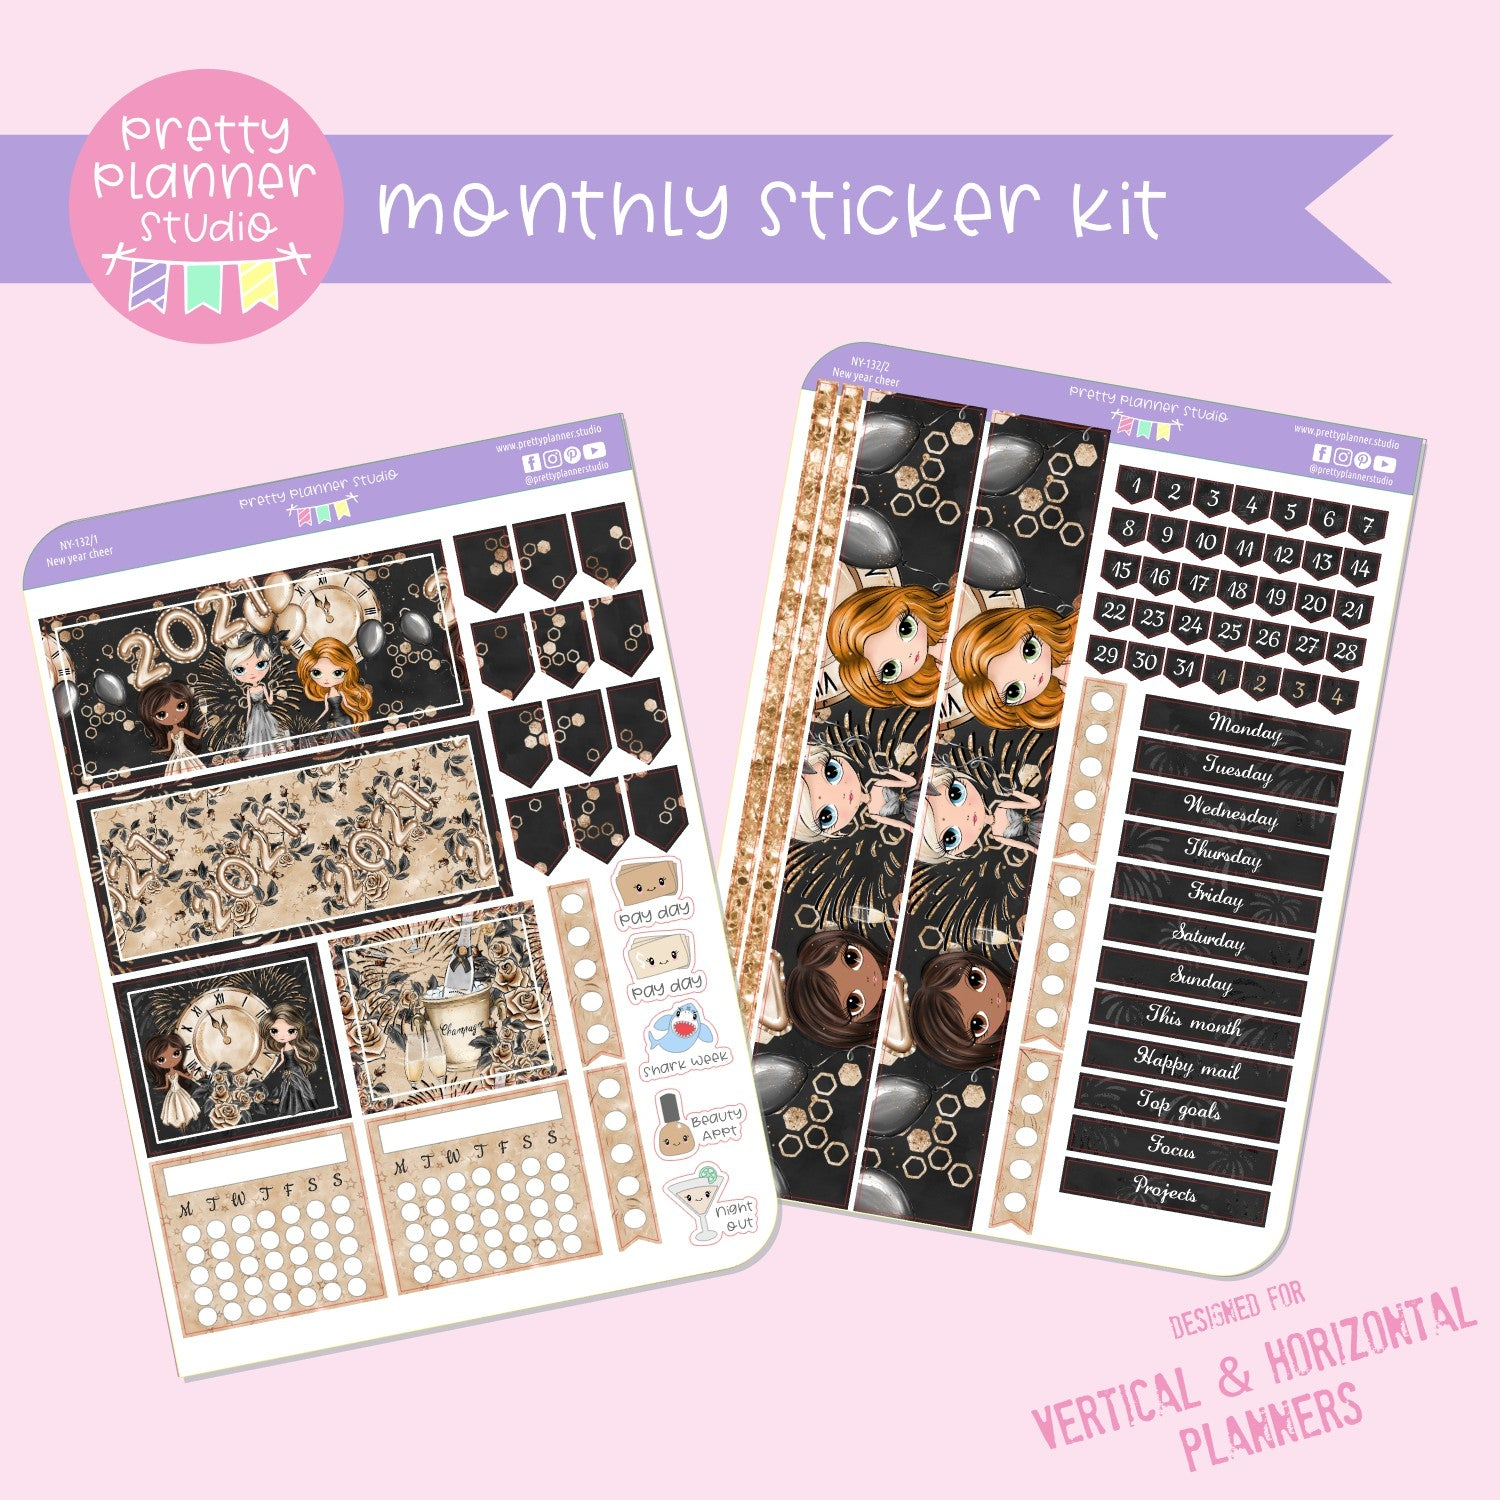 New year cheer | monthly sticker kit | vertical or horizontal | NY-132